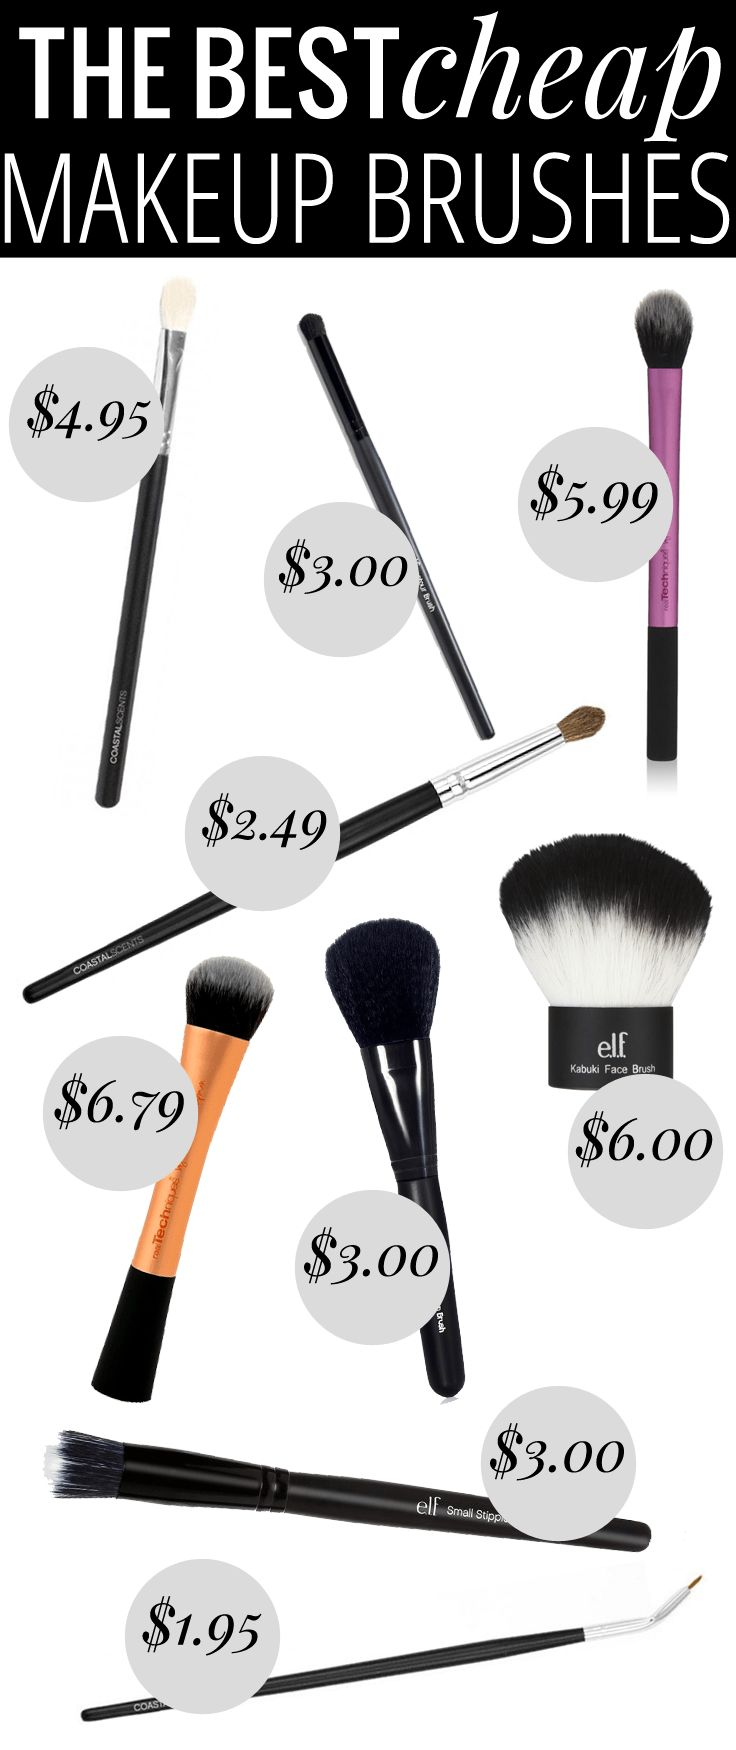 The Best Cheap Makeup Brushes Beauty Meg O On The Go Cheap Makeup Brushes Best Cheap Makeup Makeup Dupes